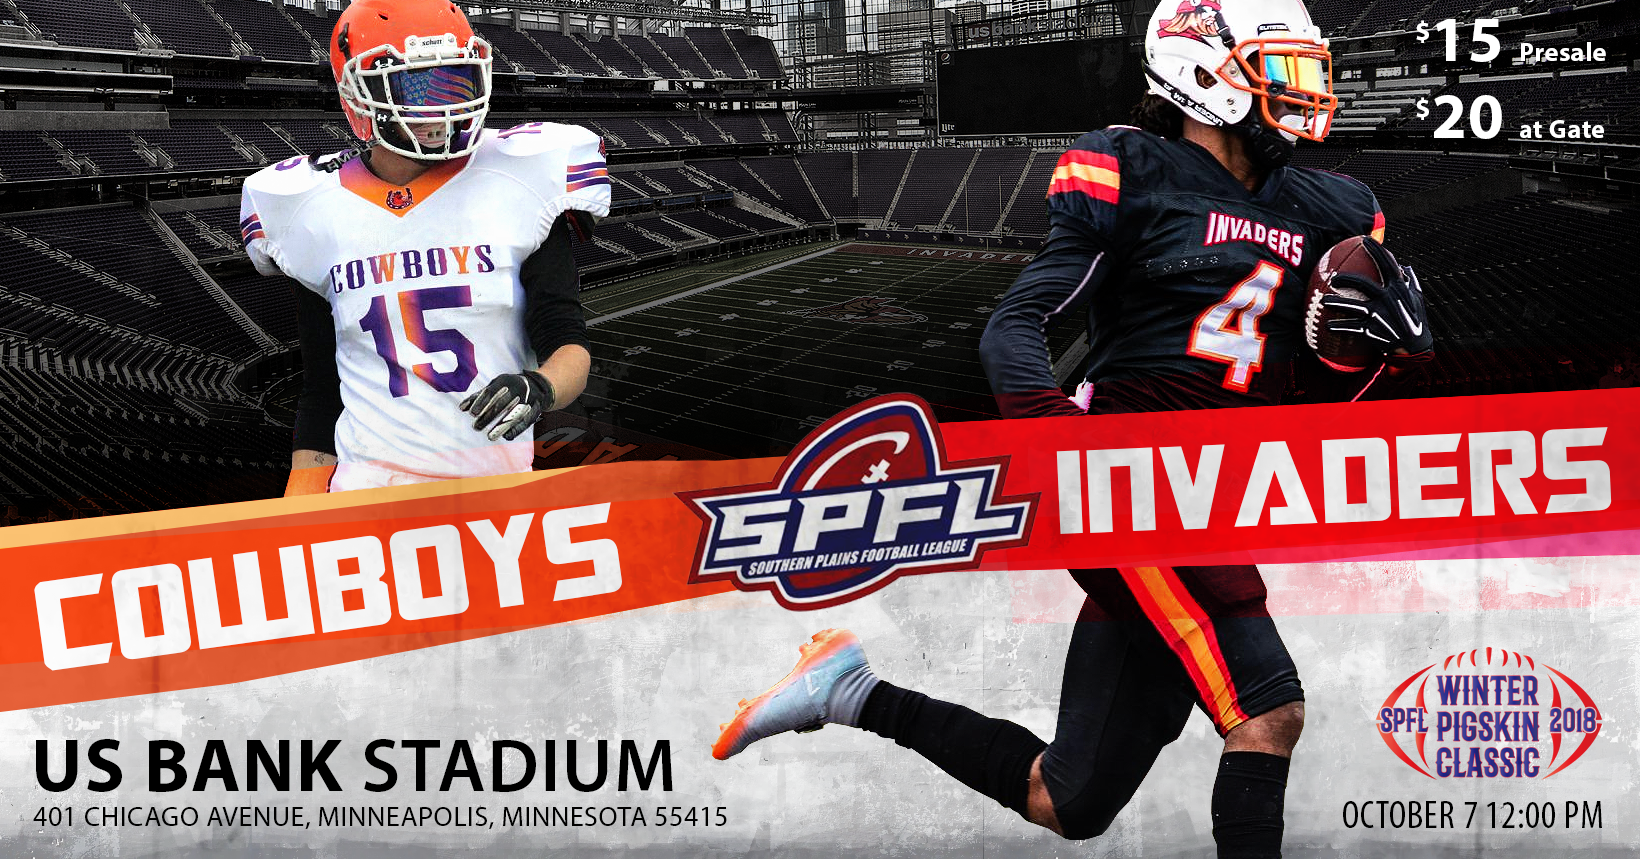 Fargo Invaders Play At US Bank Stadium On Oct 7